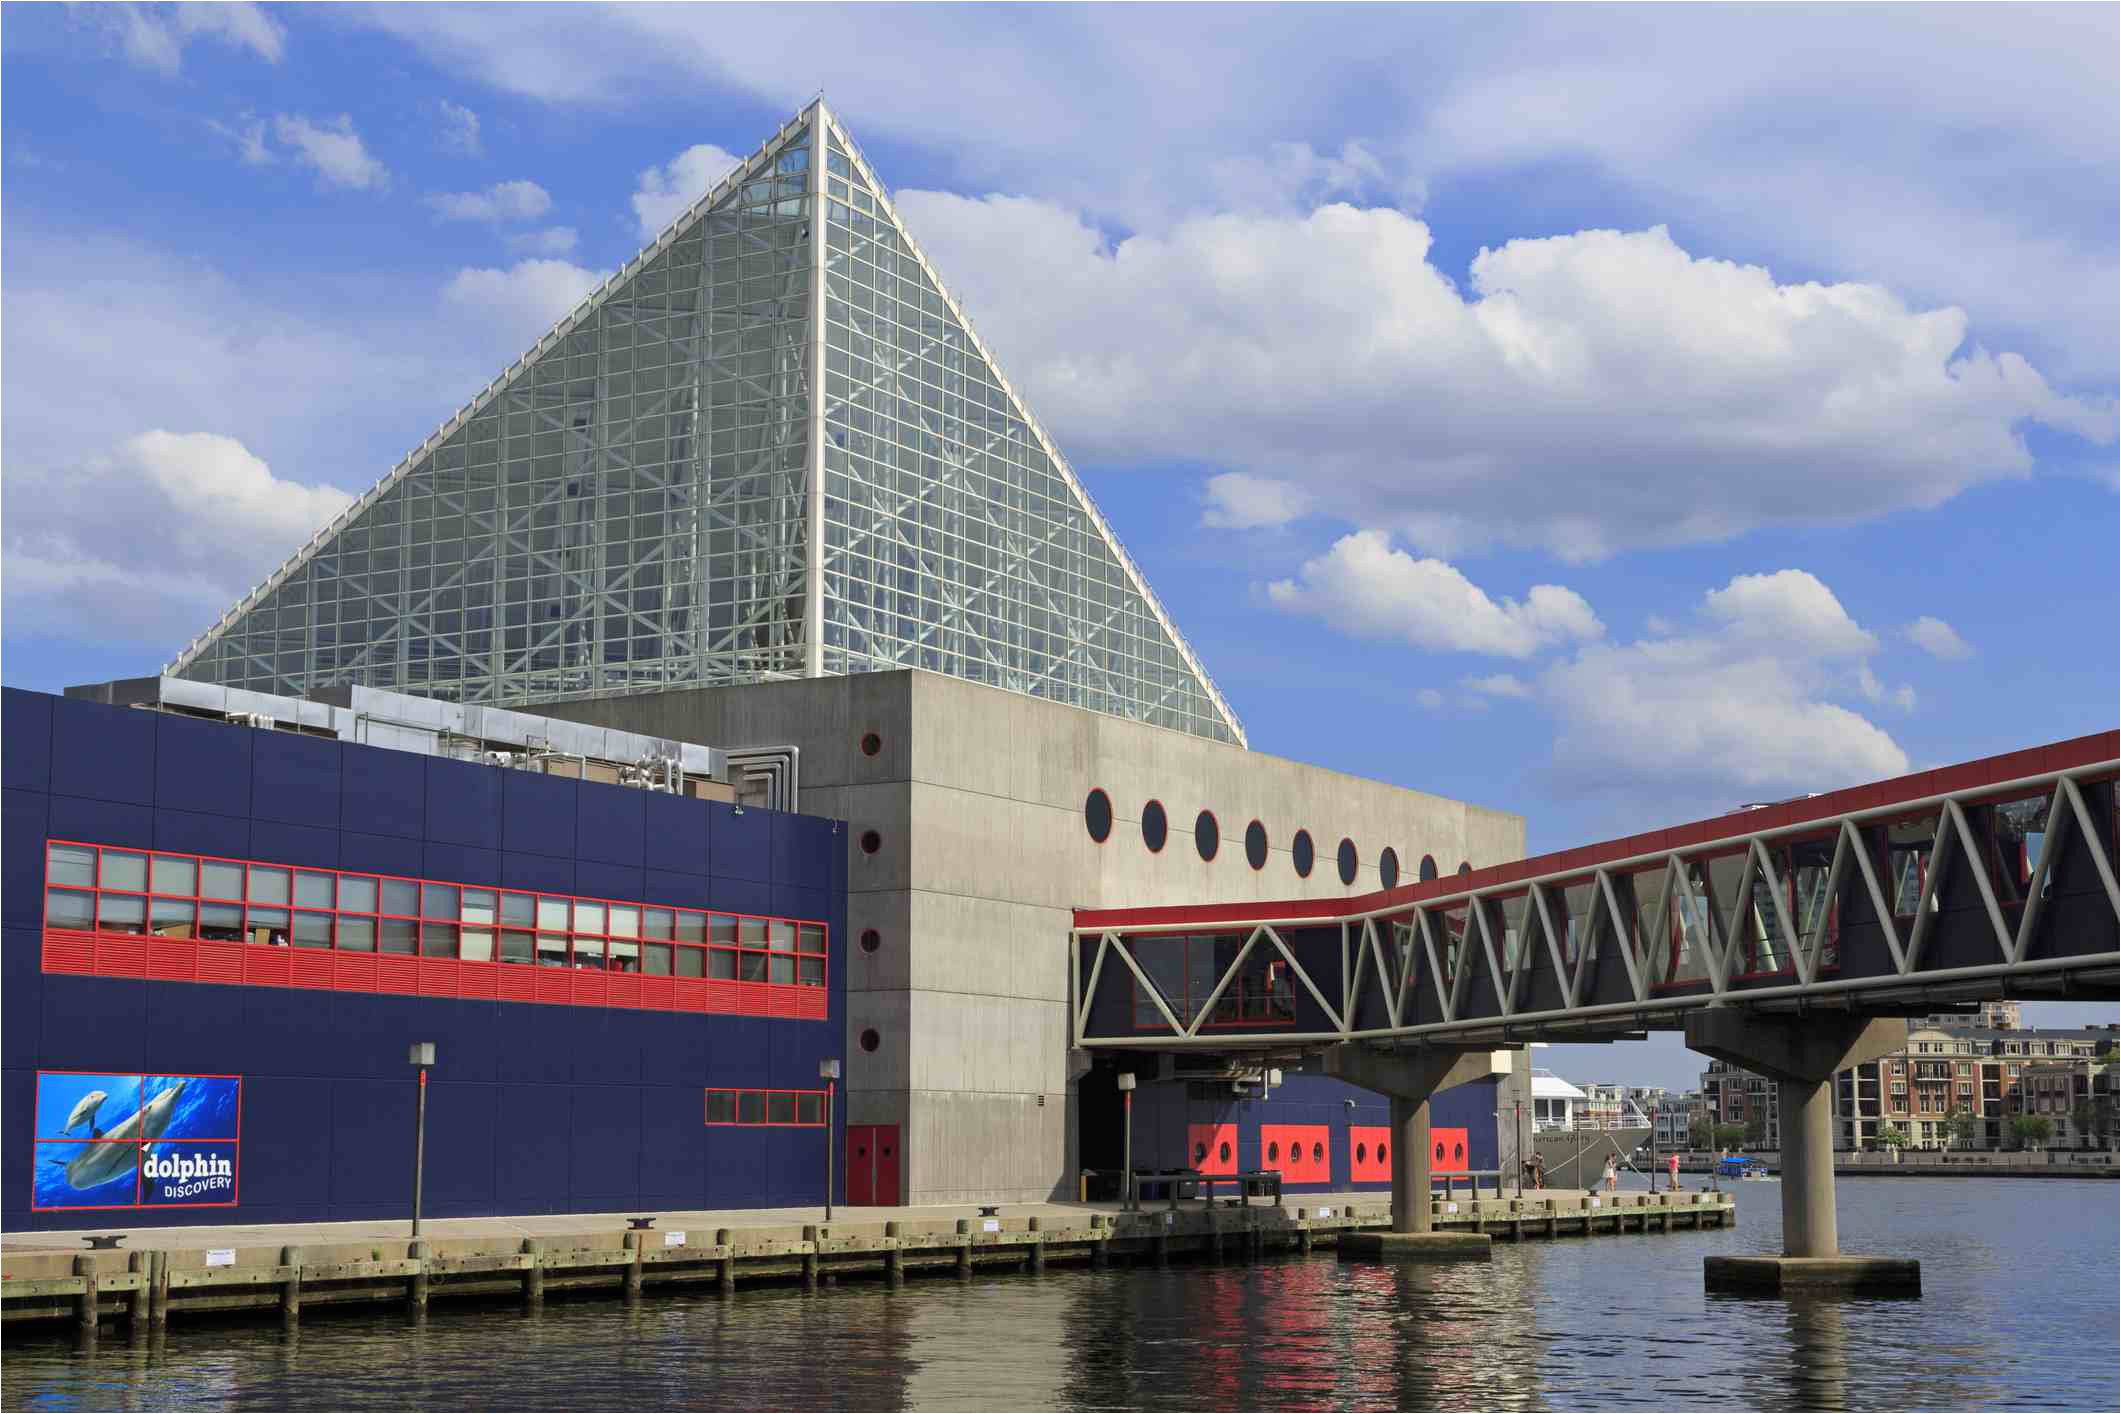 national aquarium in baltimore maryland